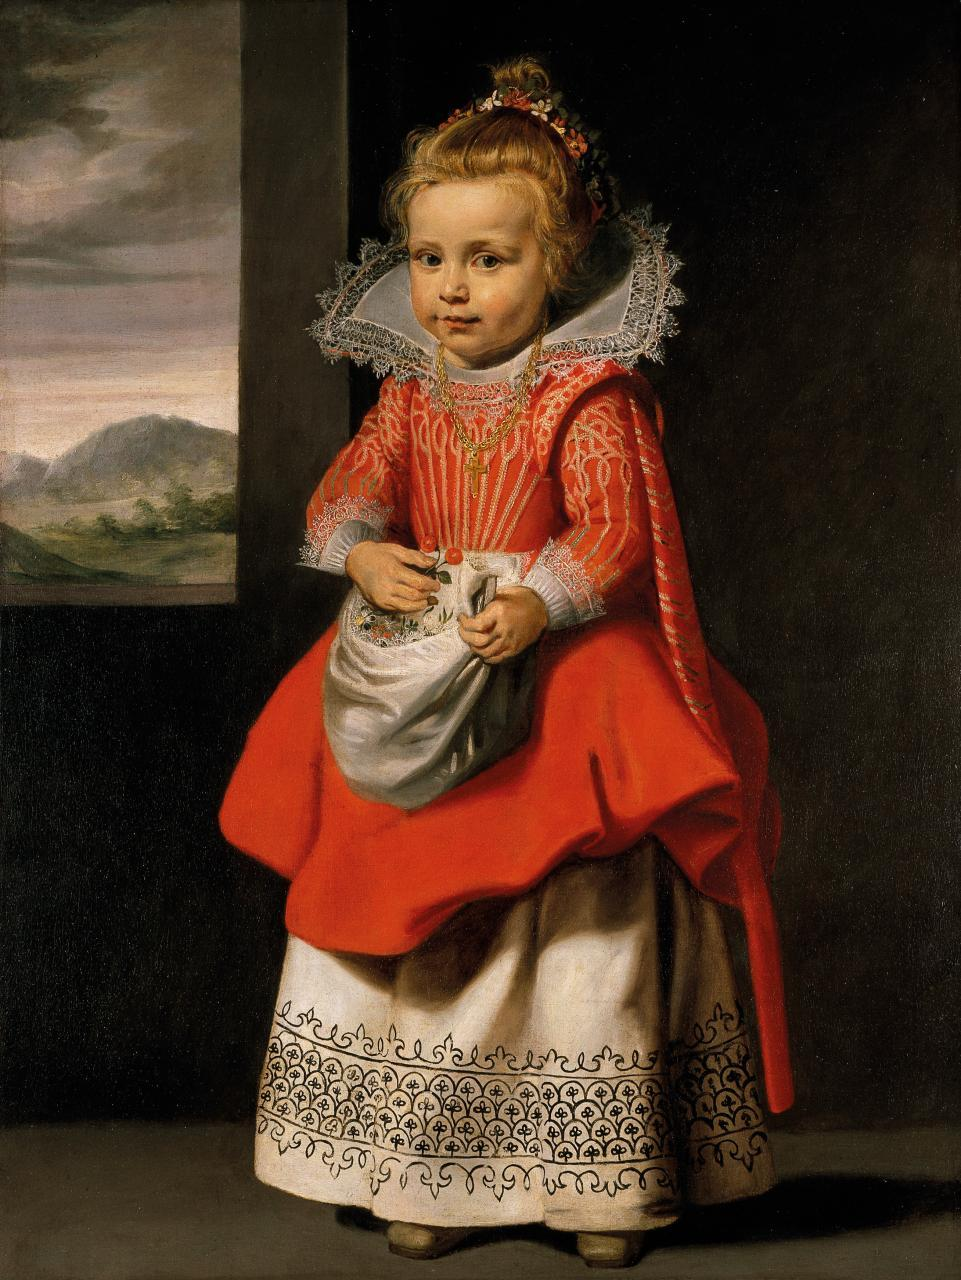 Portrait of the Artist's Daughter, Magdalena De Vos (C.1623-24). Artist: Cornelis de Vos Home & Garden > Decor > Artwork > Posters, Prints, & Visual Artwork ArtToyourlife